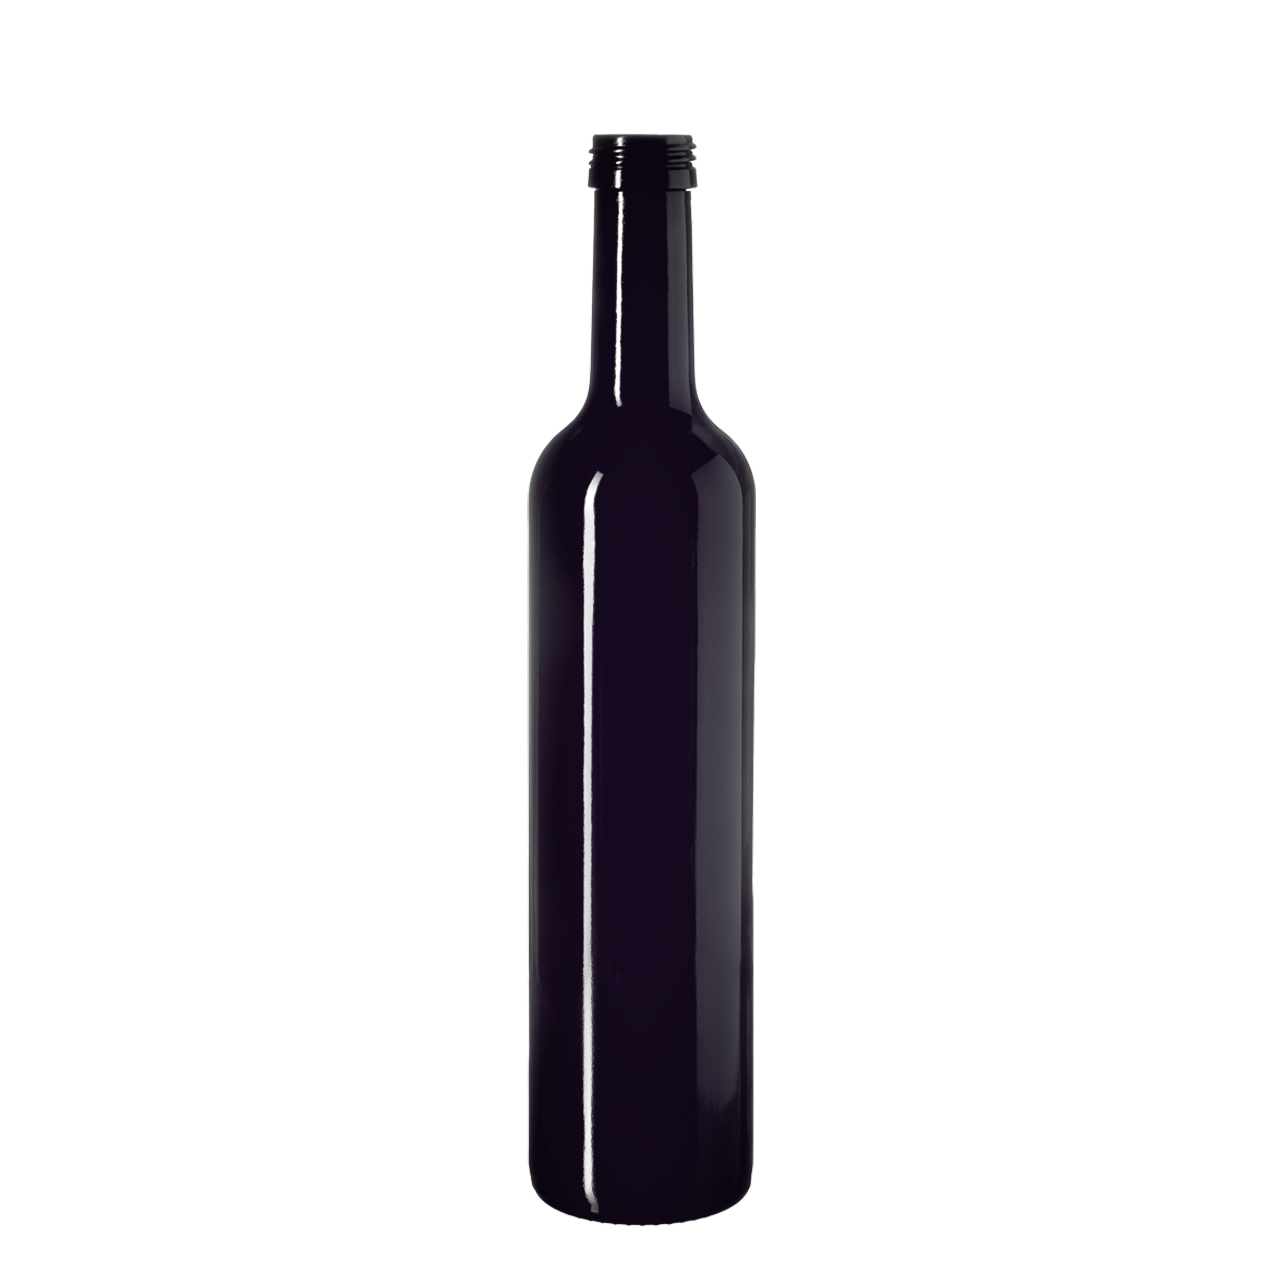 Oil bottle Pollux 500 ml, Miron, 31.5 STD thread (height: 294 mm)